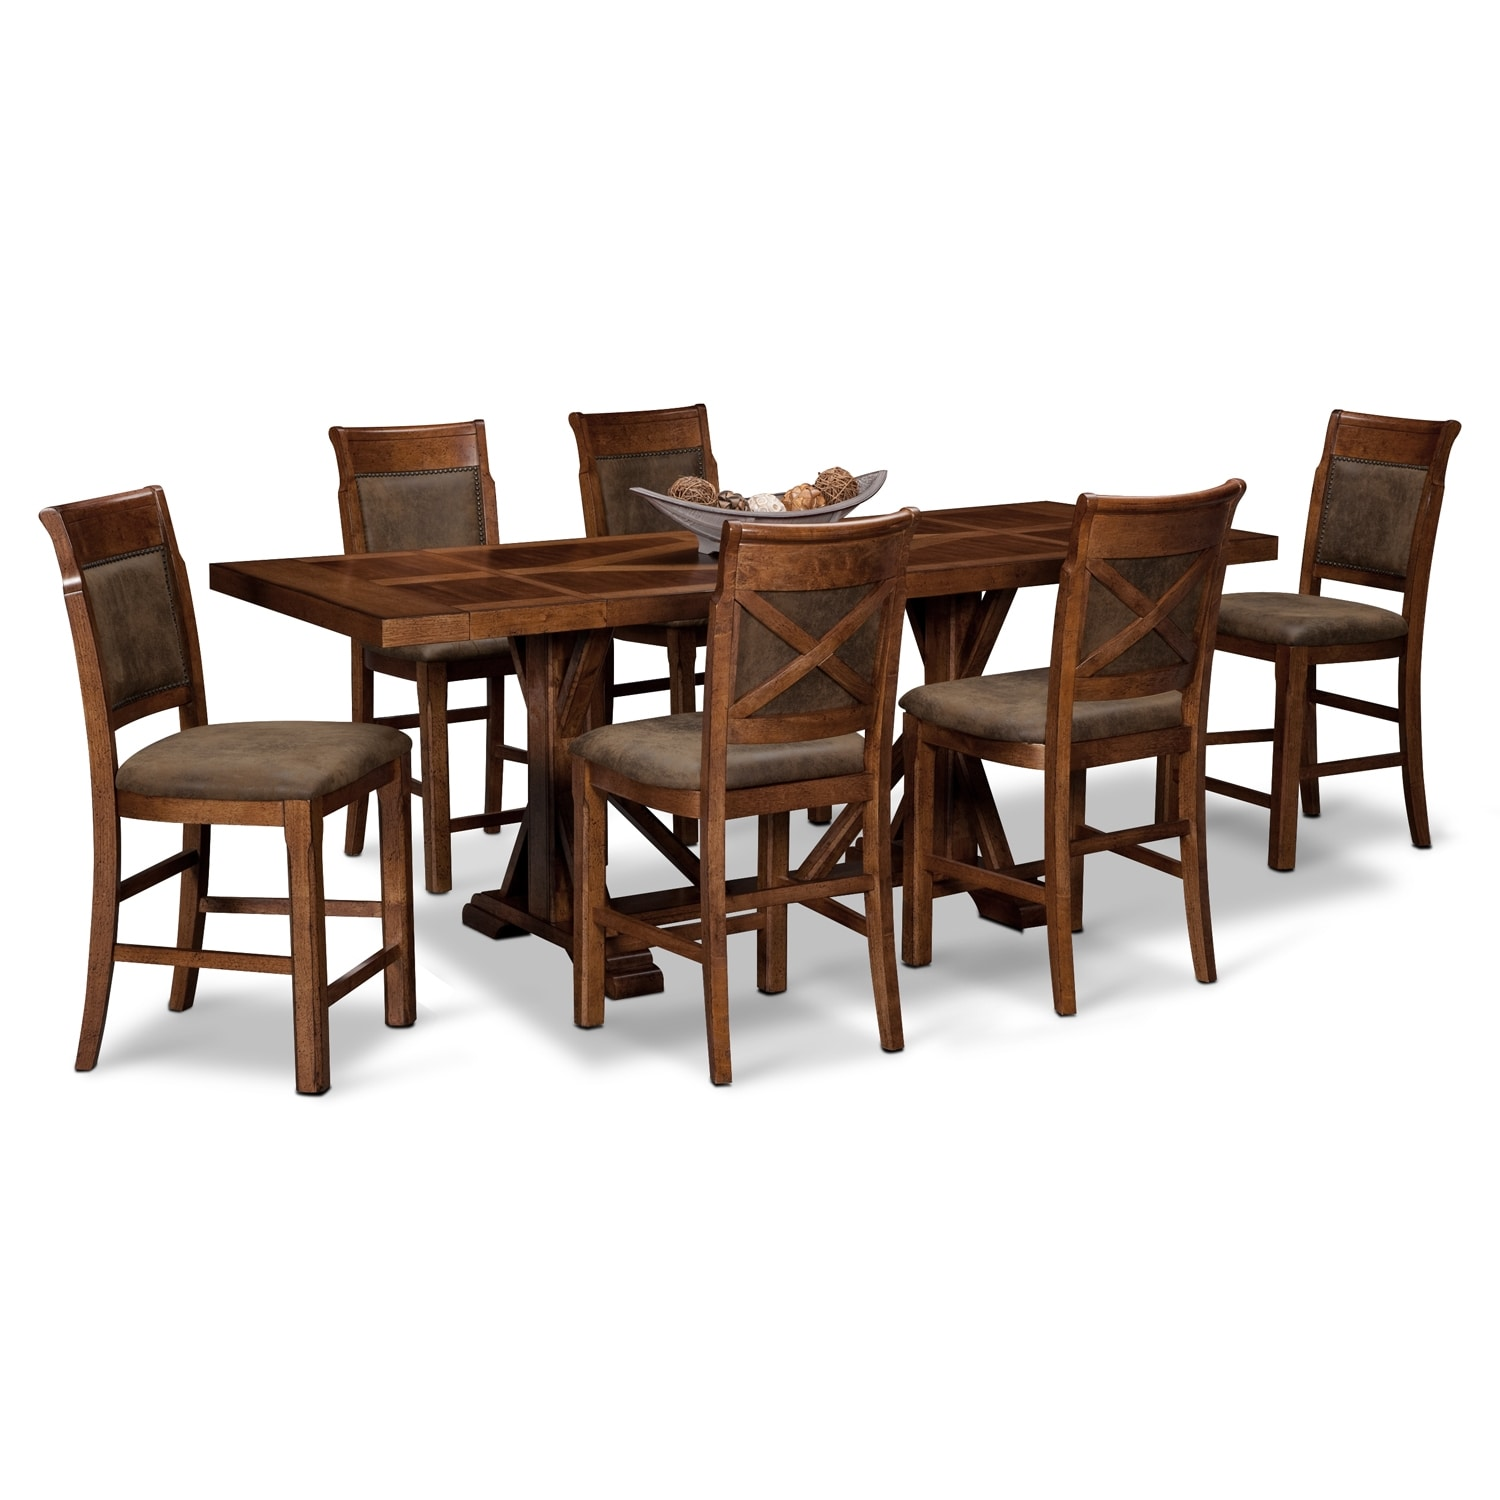 Dining Room Furniture - Austin Walnut 7 Pc. Counter-Height Dining Room